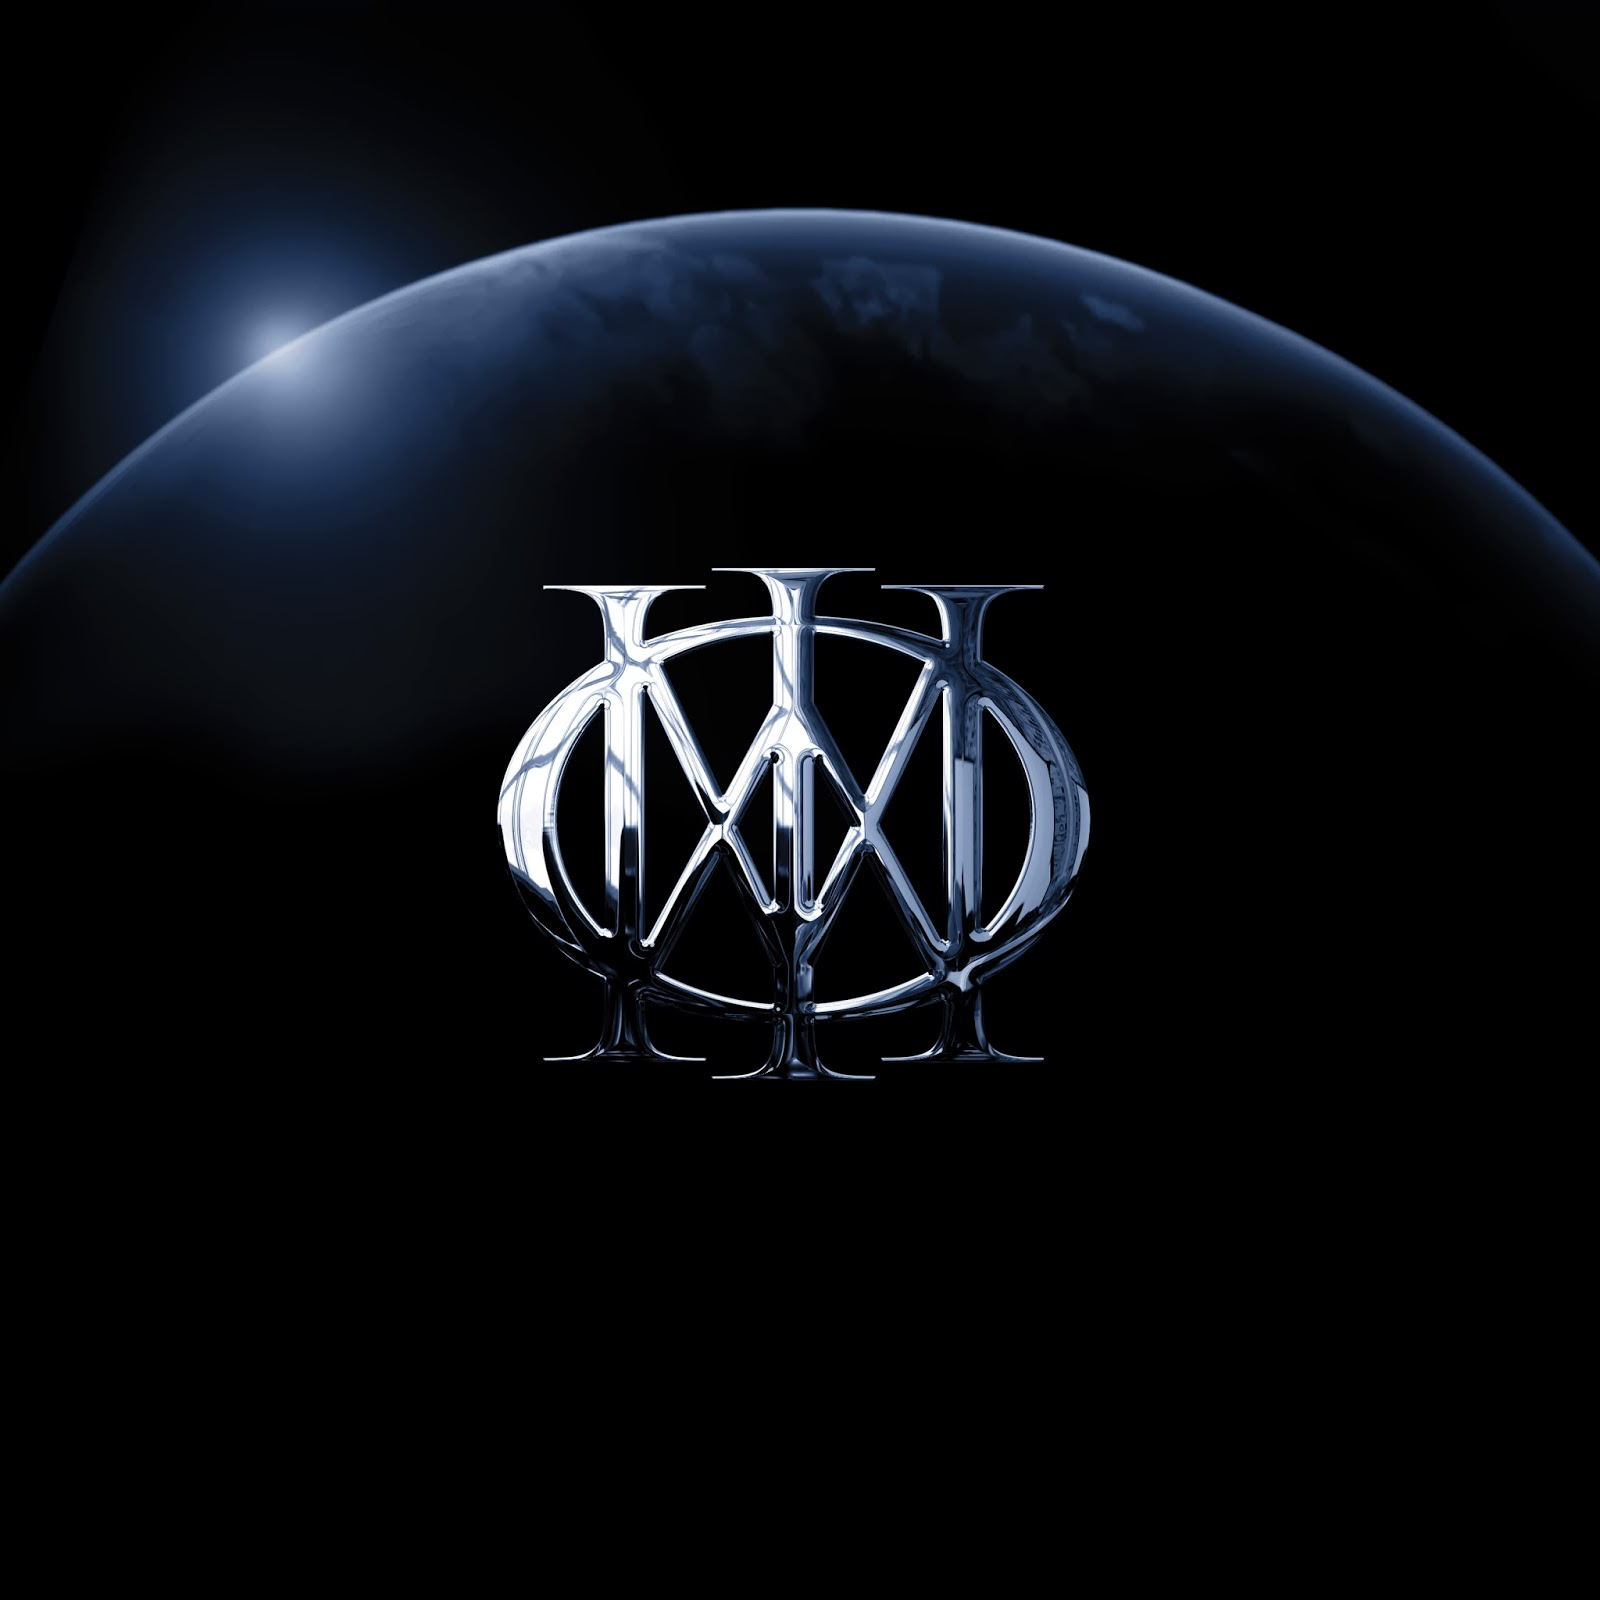 Dream Theater self titled album cover